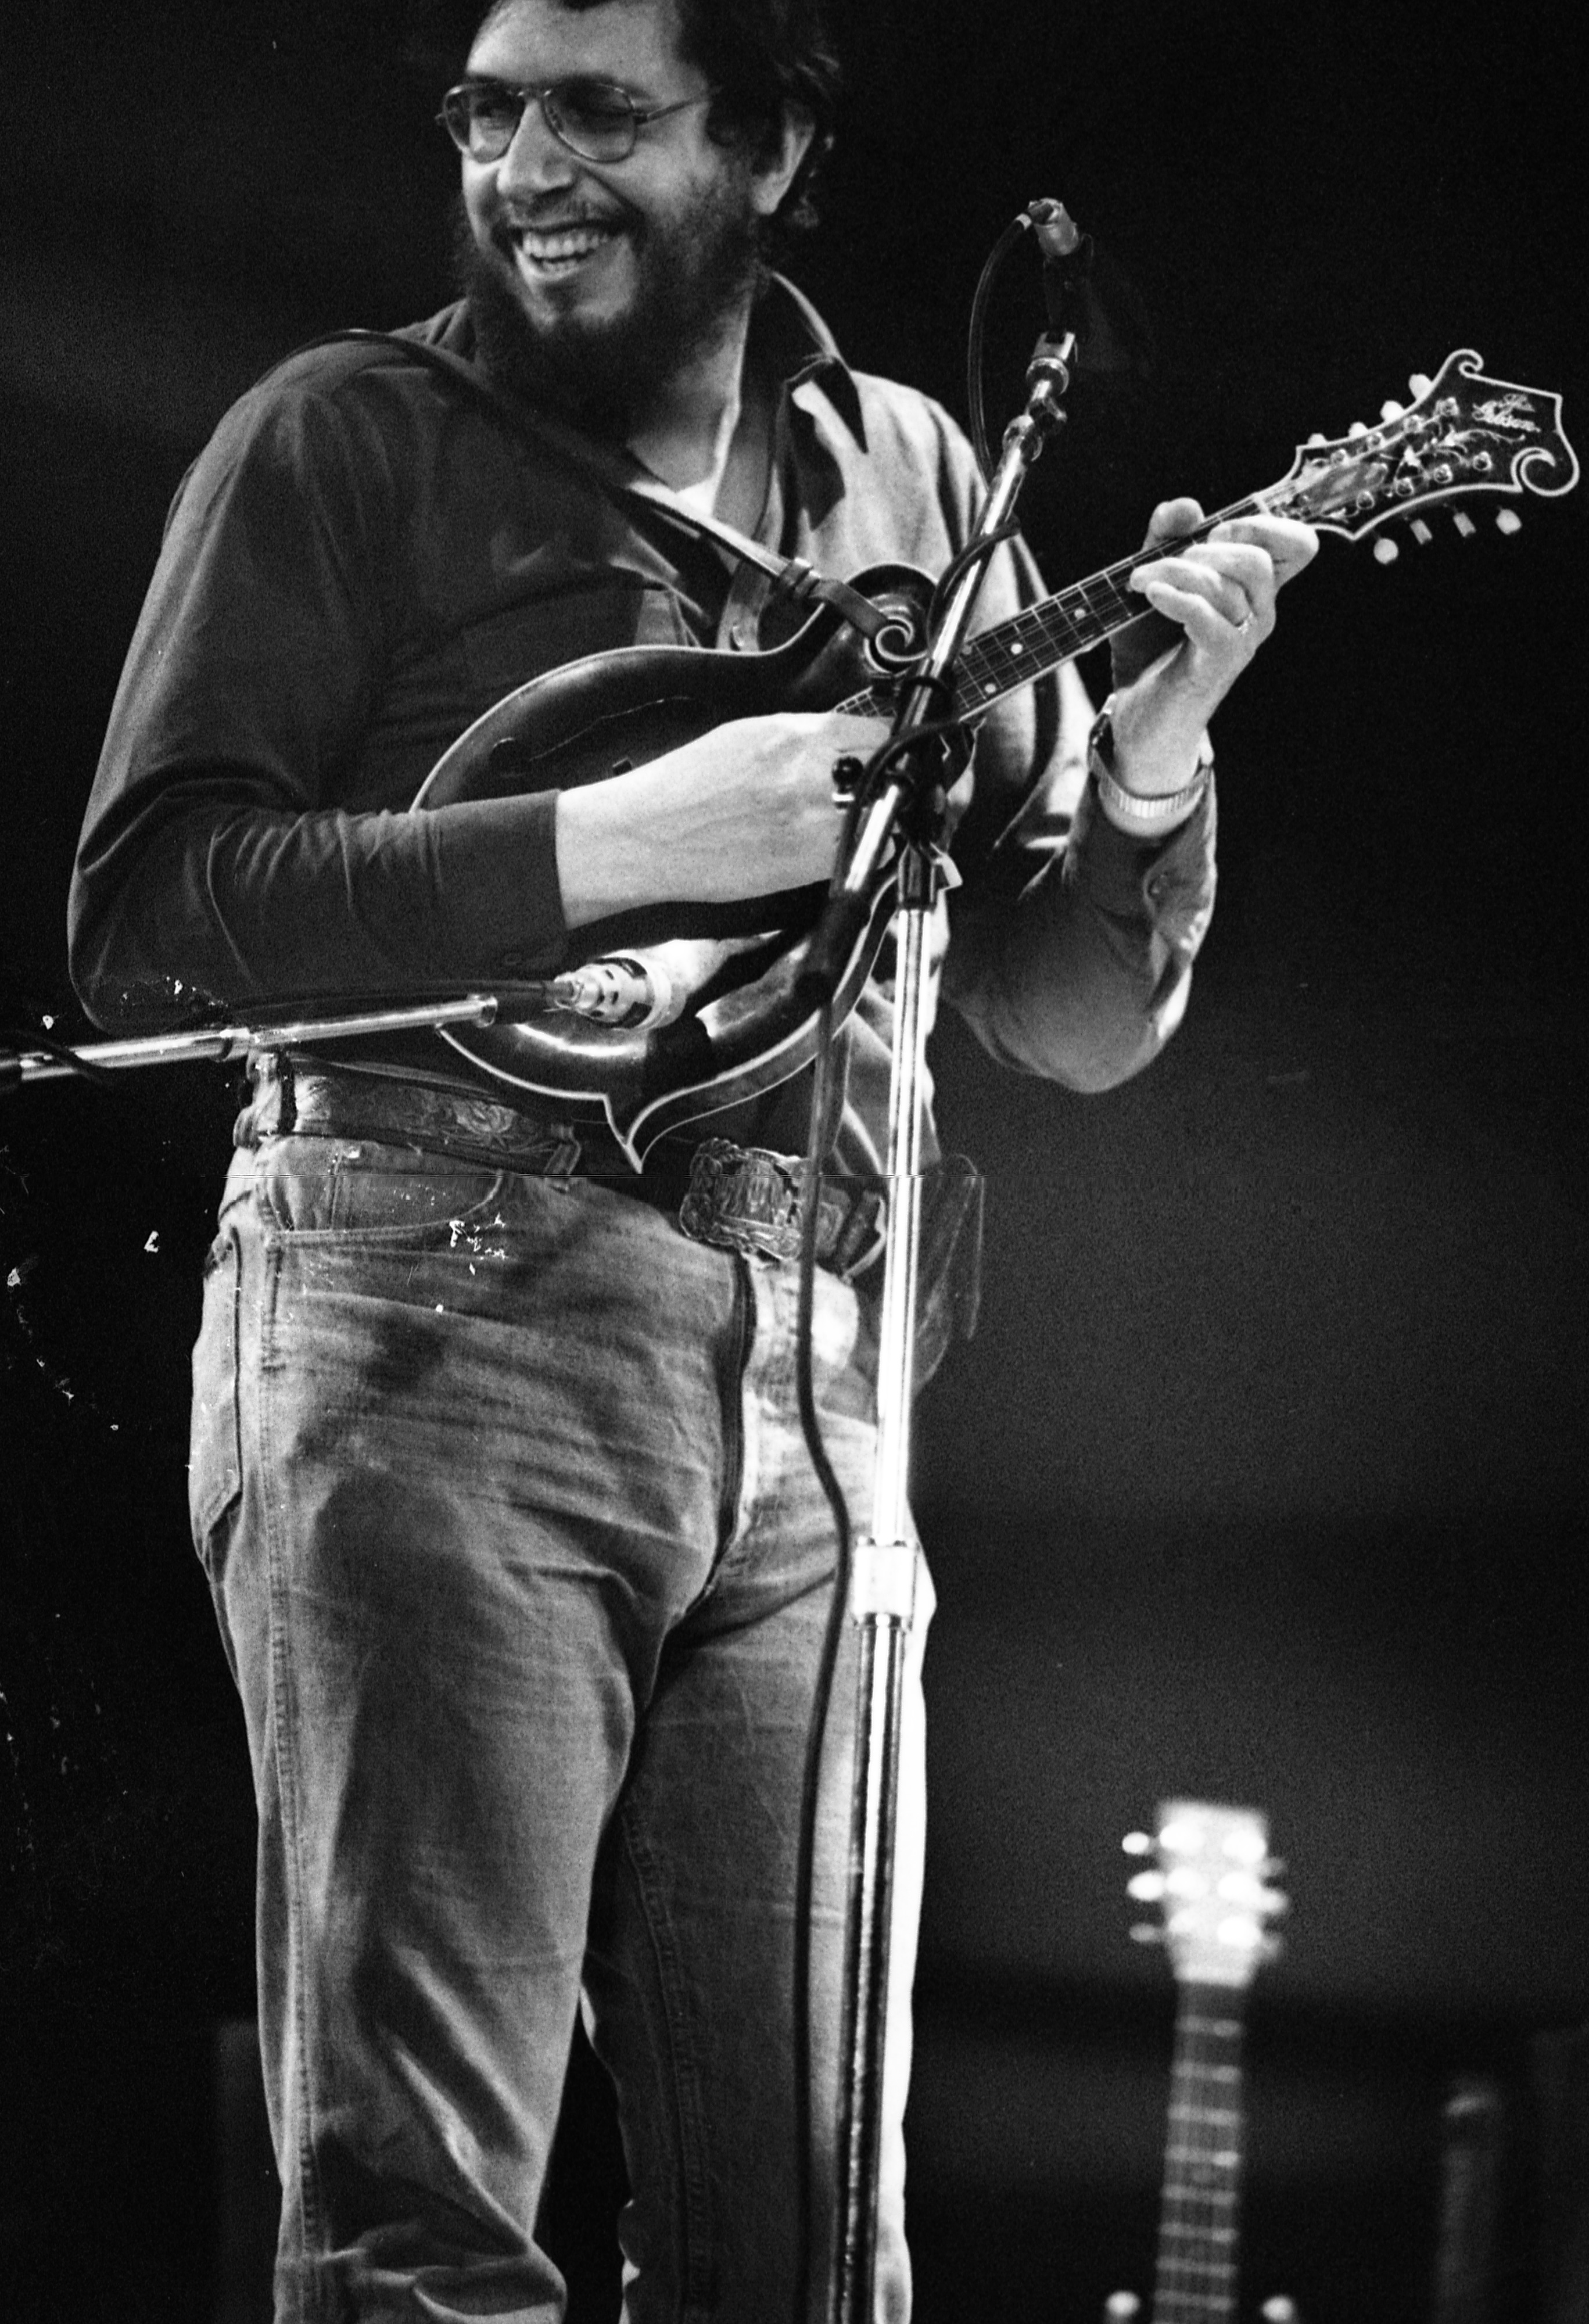 David Bromberg at the 5th Annual Ann Arbor Folk Festival, January 1982 image